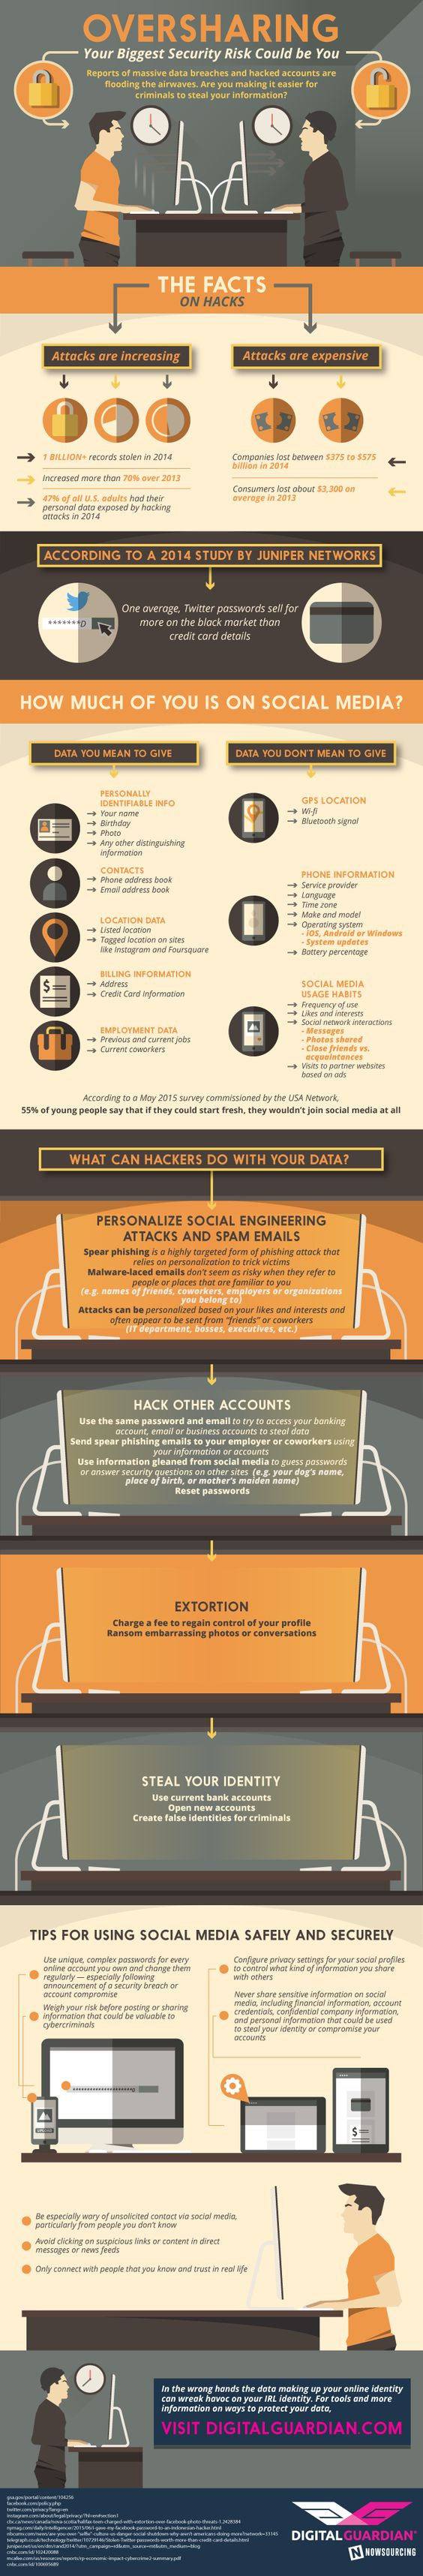 Social Media Oversharing: Your Biggest Security Risk Could Be You - #infographic: